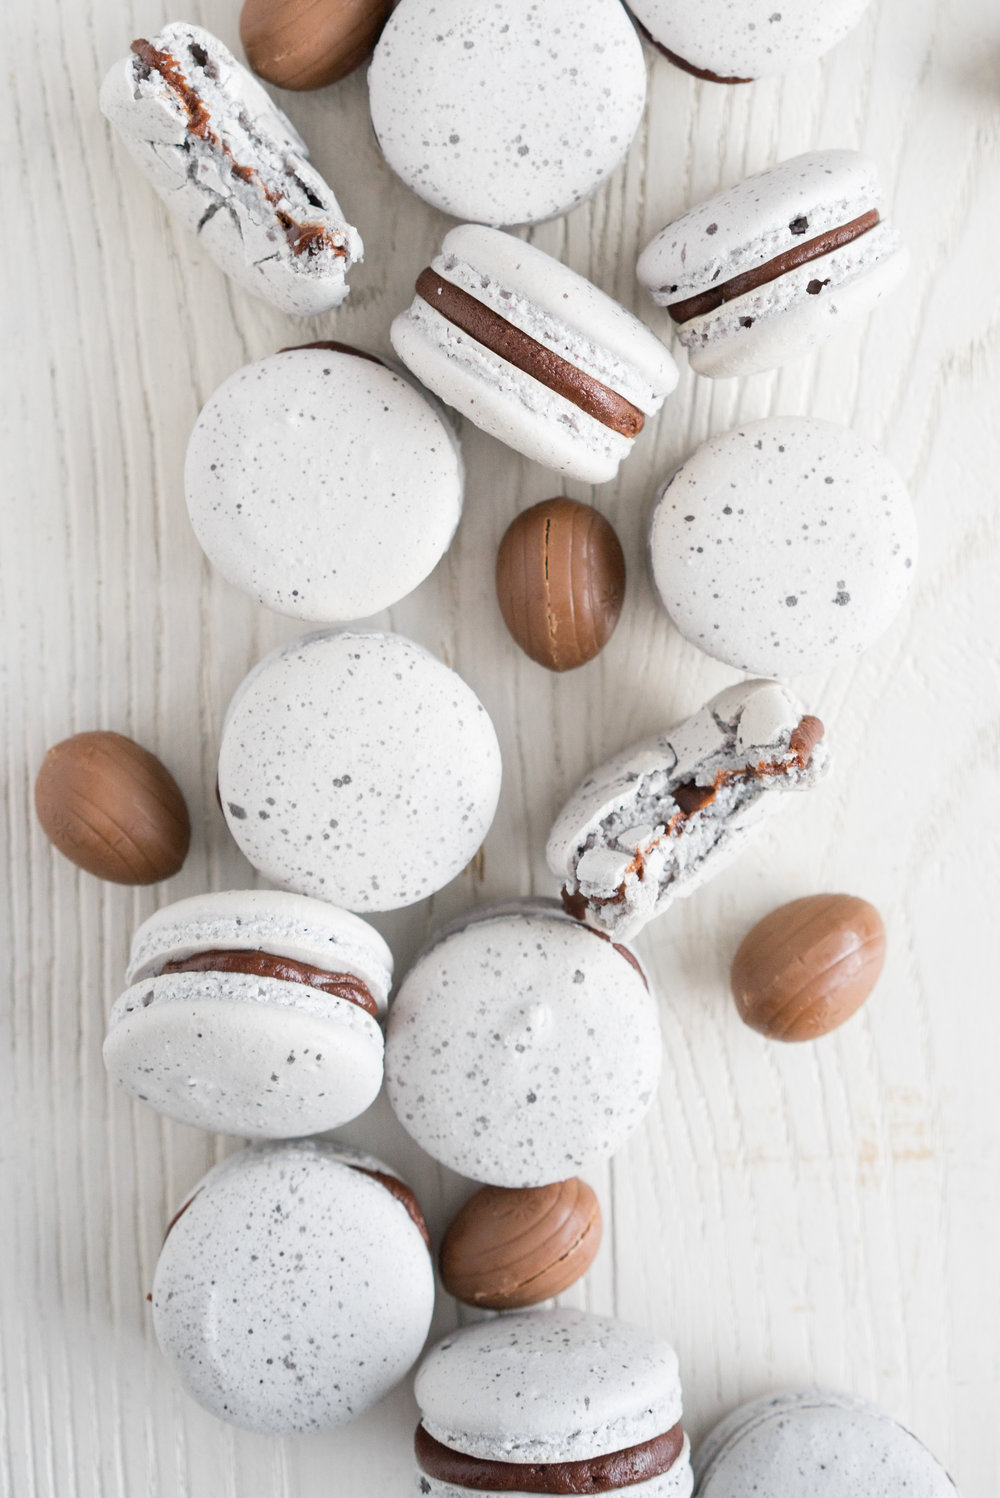 Creme egg macarons - a favourite easter treat, transformed into a macaron. A speckled vanilla bean shell is sandwiched with a rich creme egg ganache